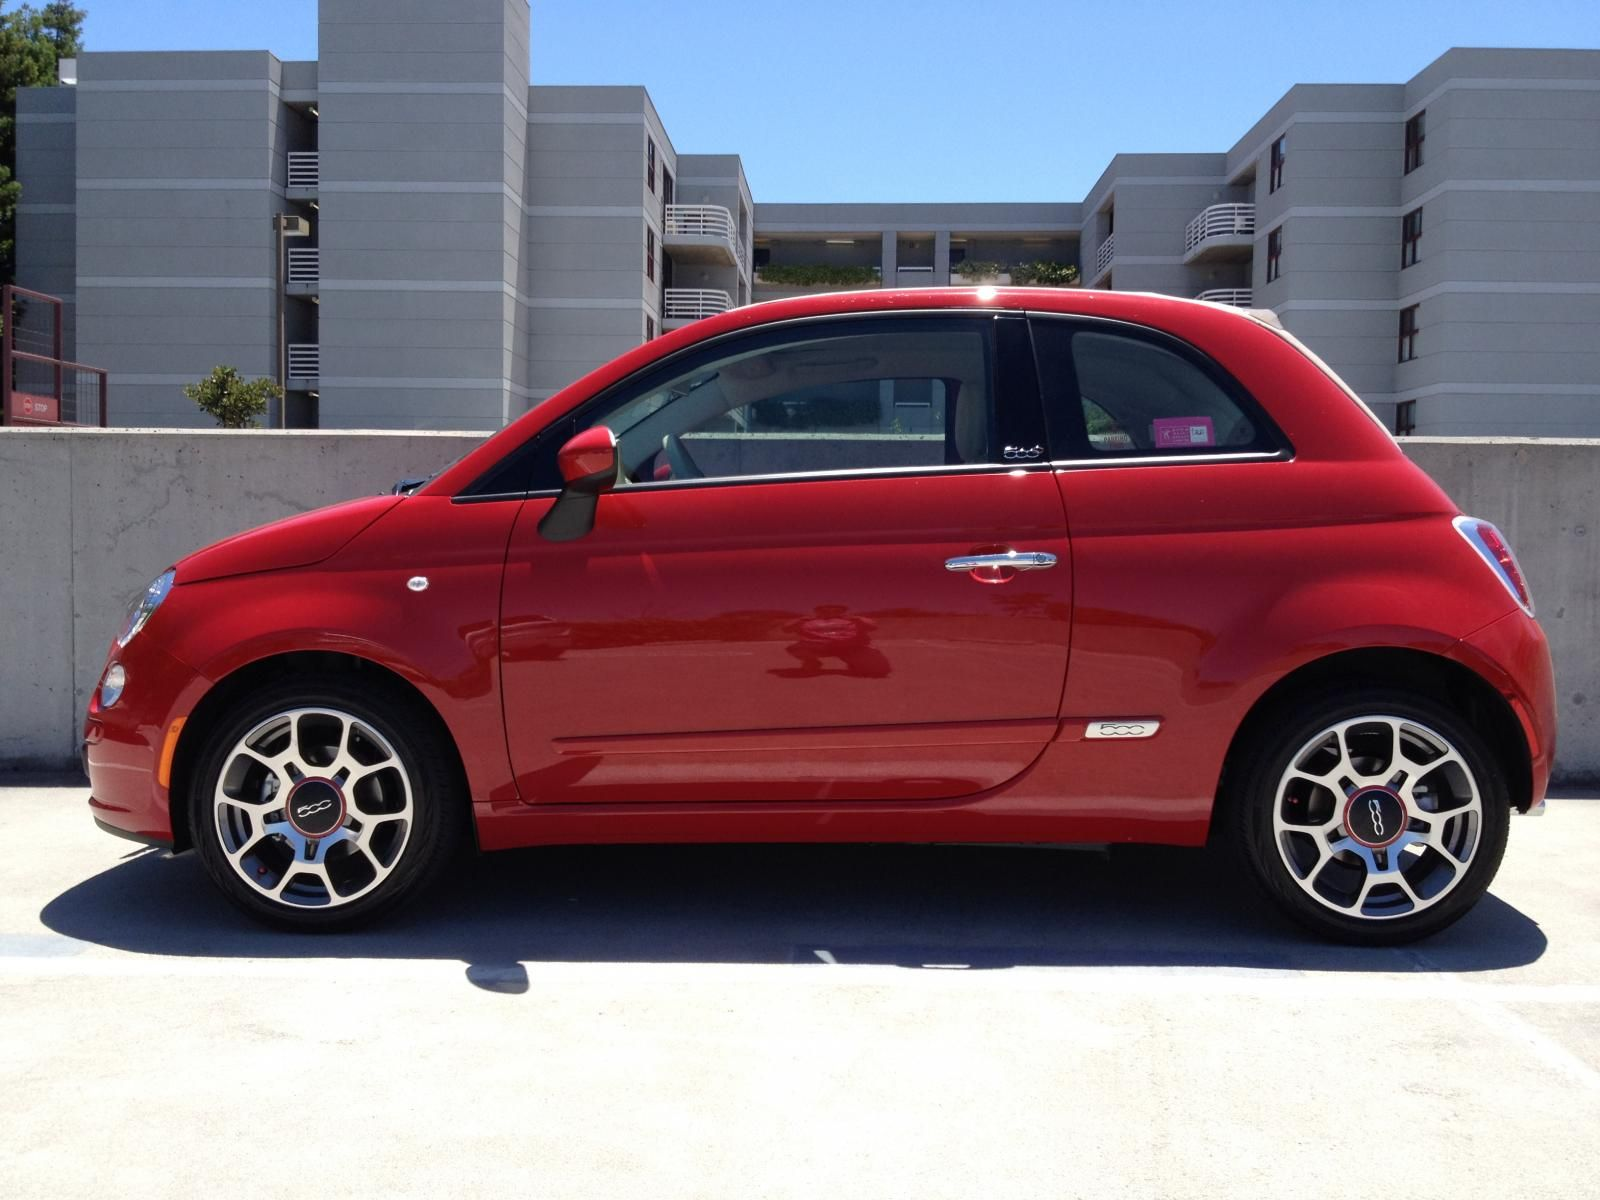 2 My First Car Red Fiat 500 Fiat 500 Fiat 500c Dream Cars